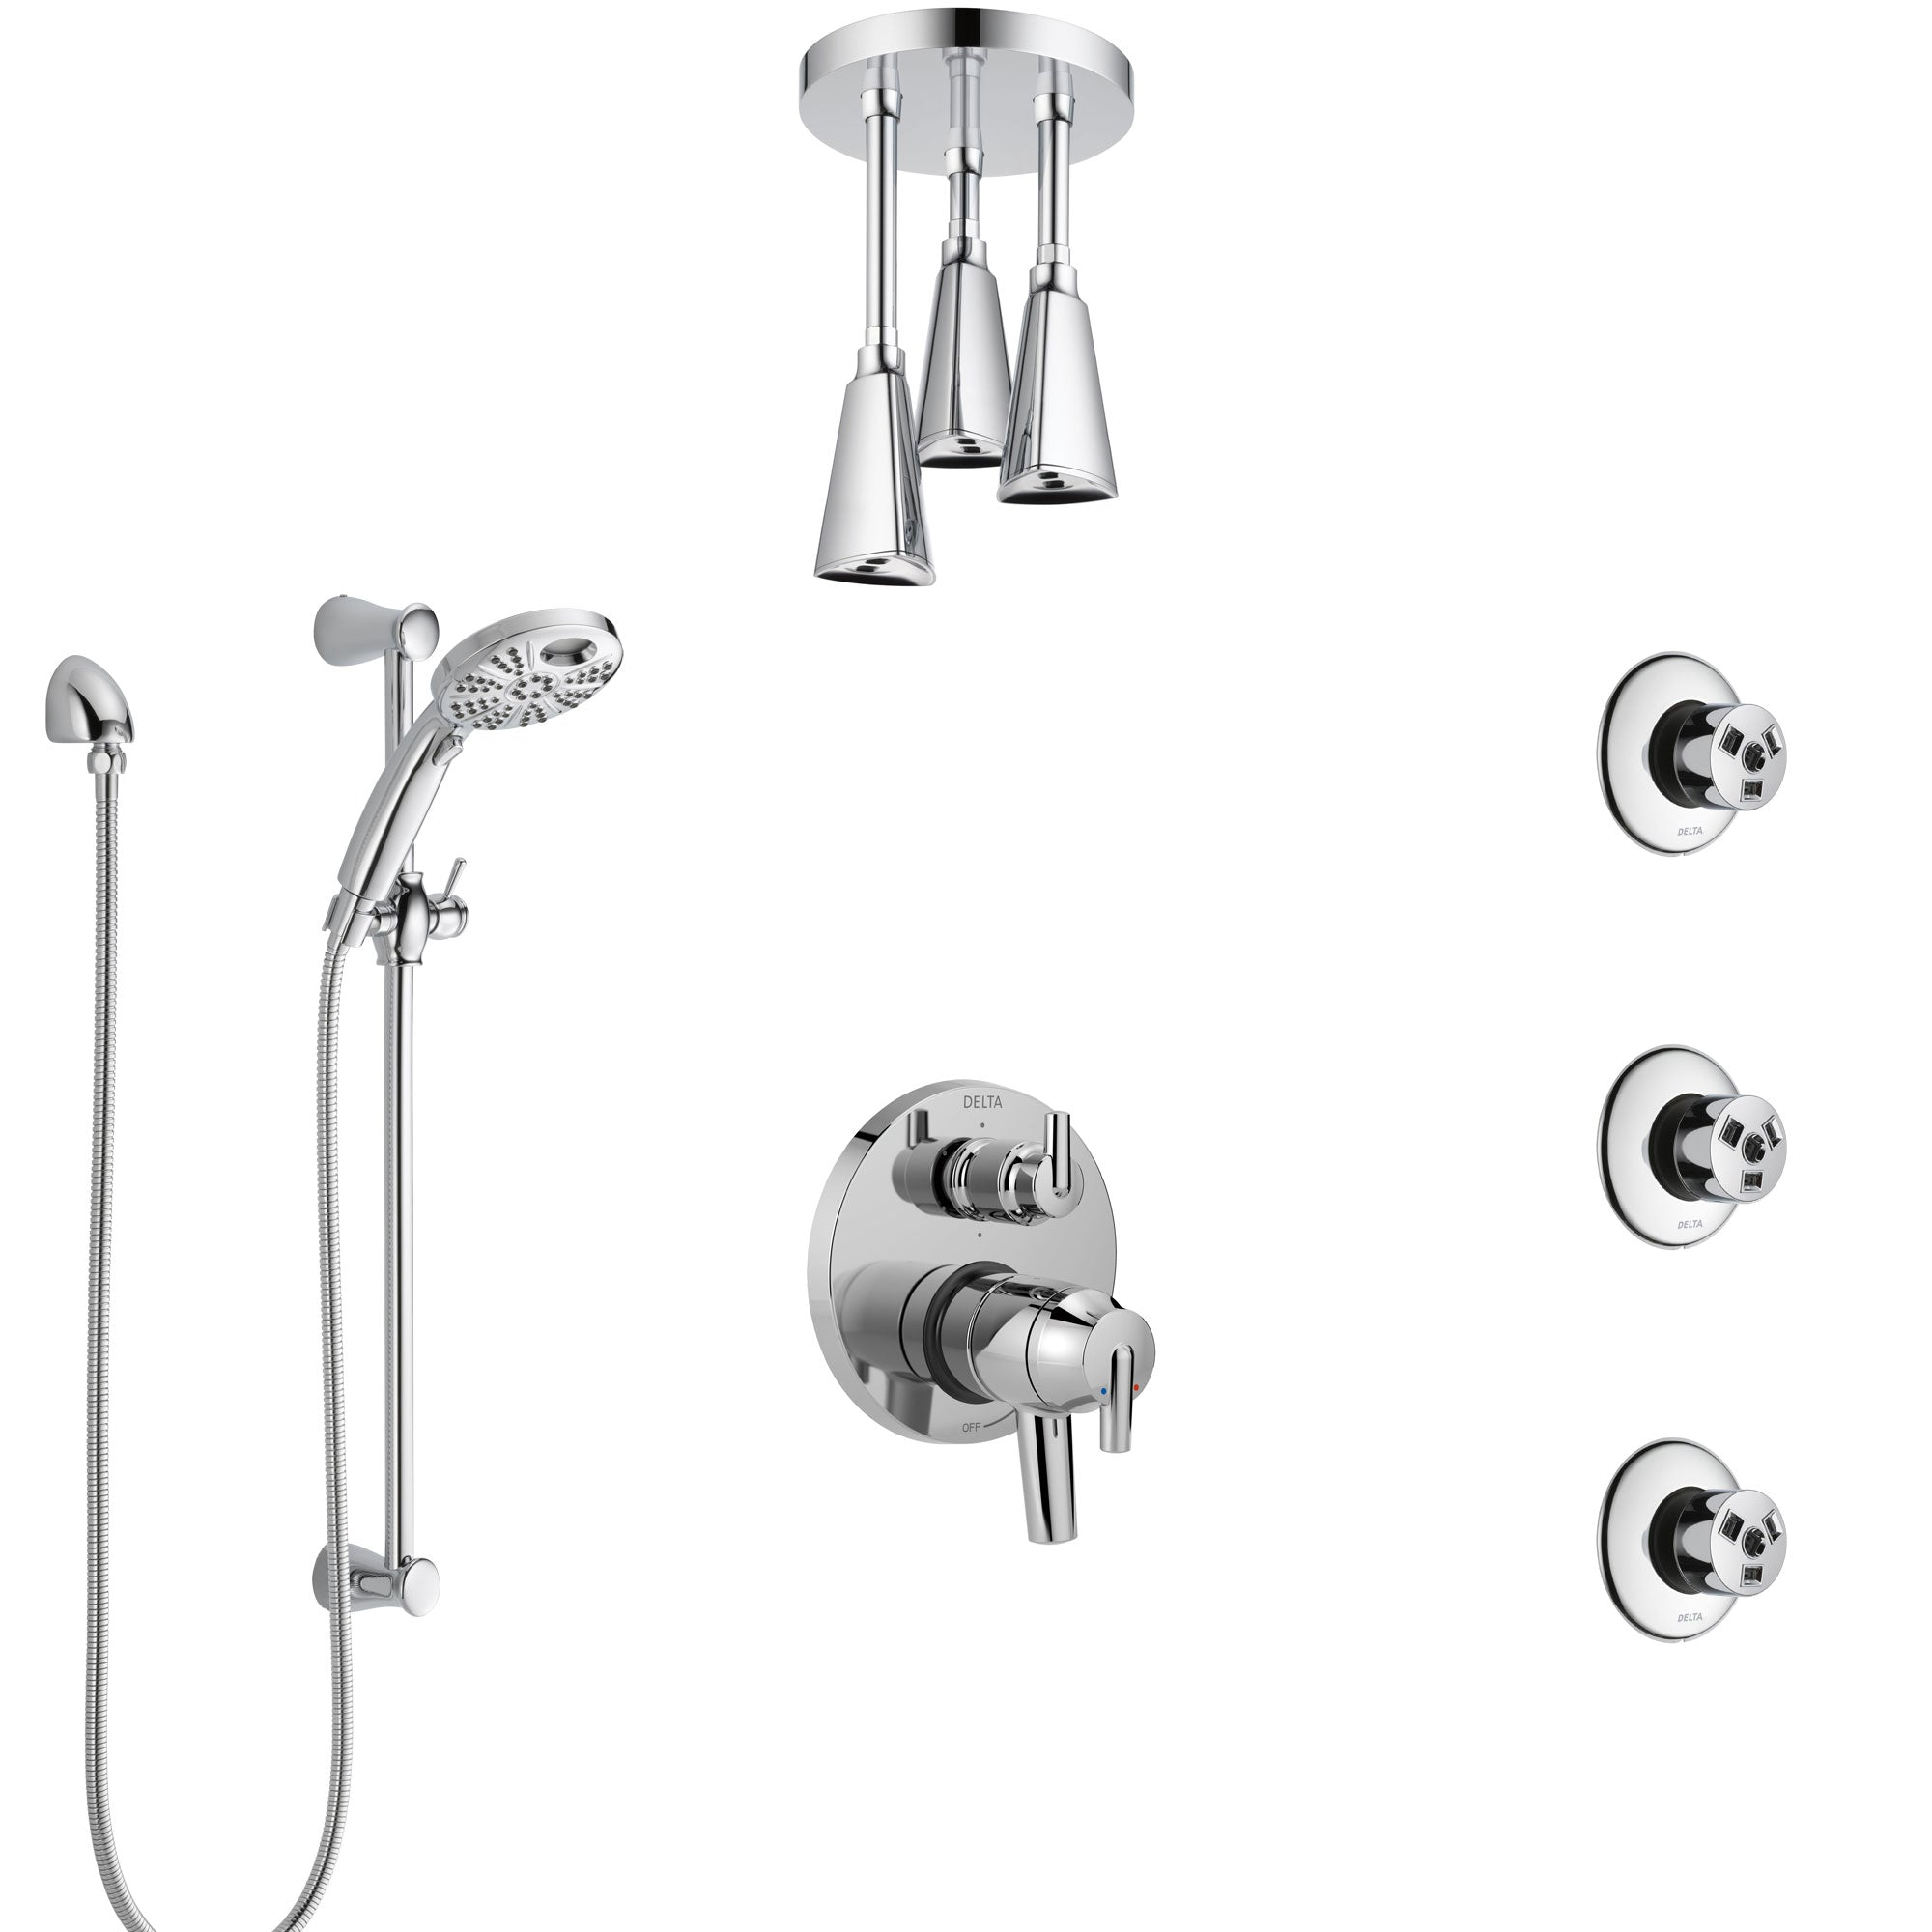 Delta Trinsic Chrome Dual Control Handle Shower System, Integrated Diverter, Ceiling Mount Showerhead, 3 Body Sprays, and Temp2O Hand Shower SS279595